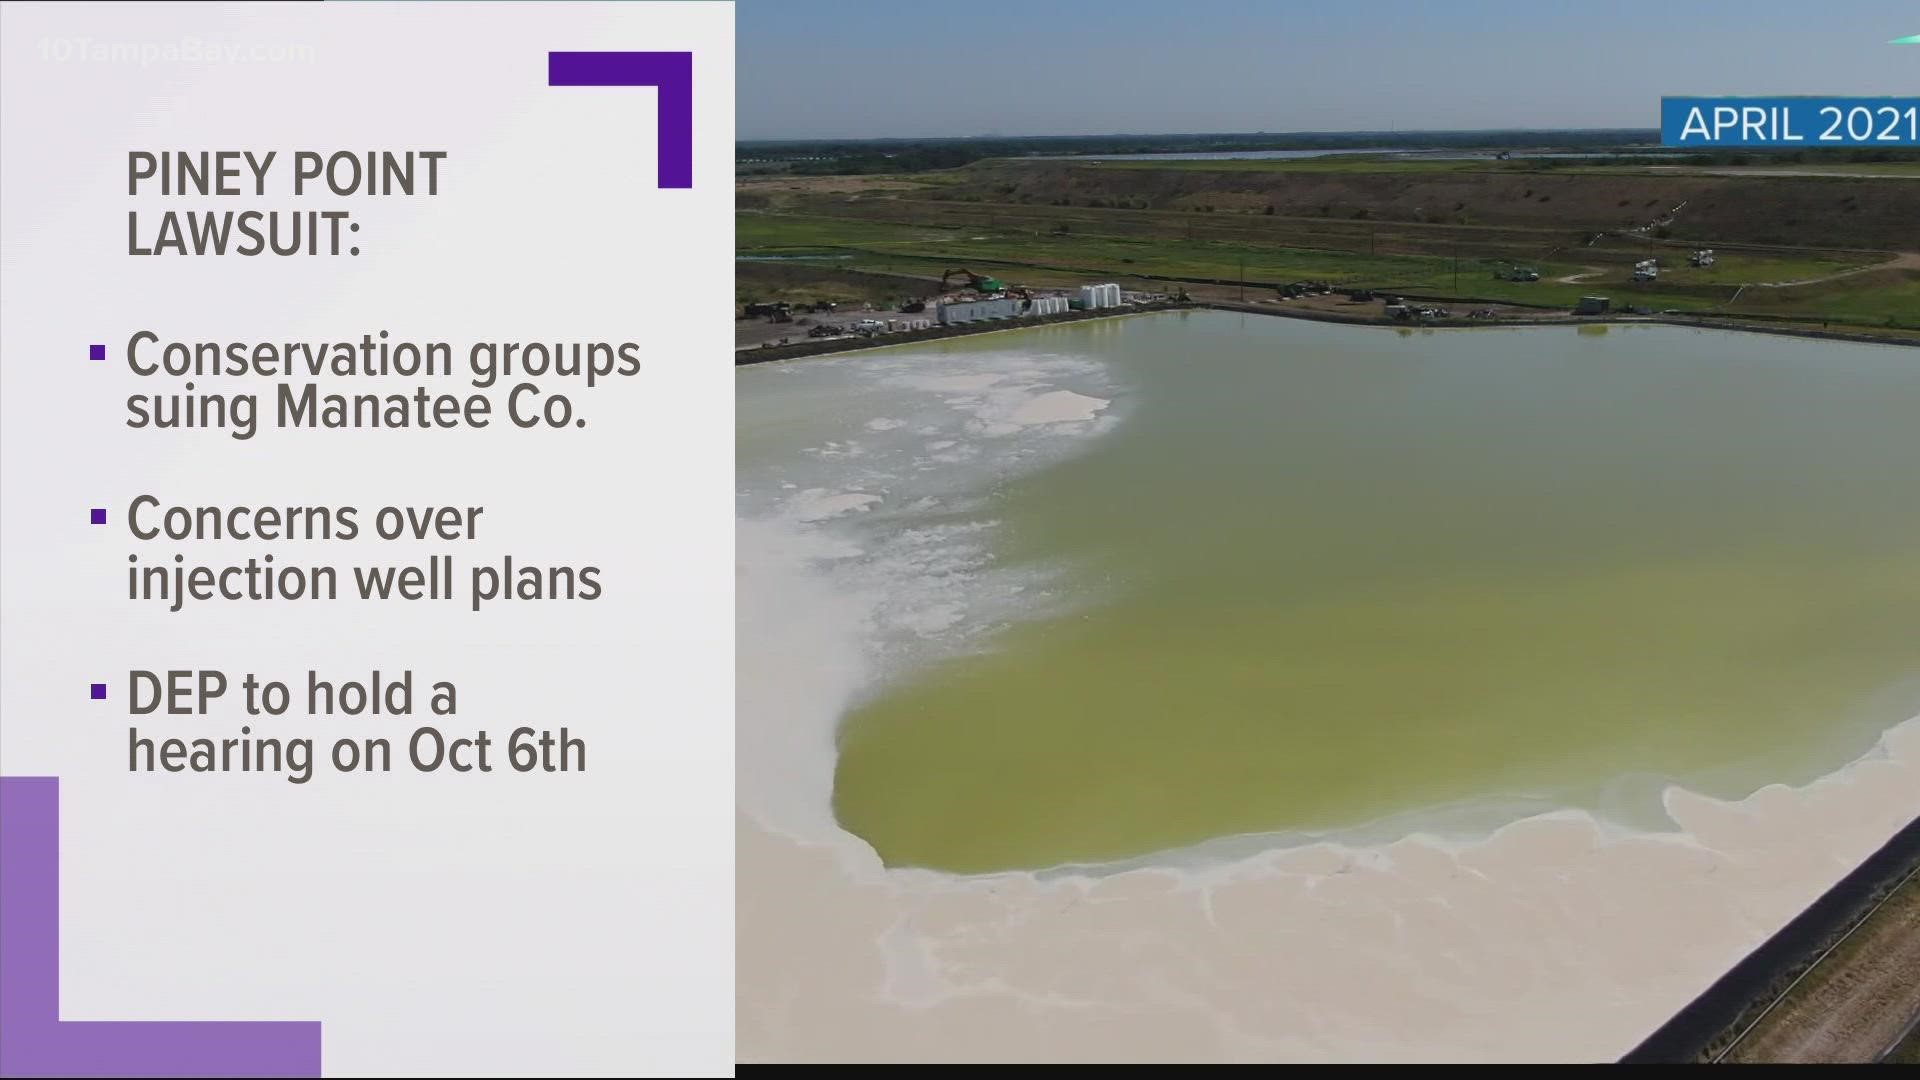 b310e09a 46cd 4e73 9944 In: Environmental Groups Sue Manatee County Over Piney Point Deep Injection Well   Our Santa Fe River, Inc. (OSFR)   Protecting the Santa Fe River